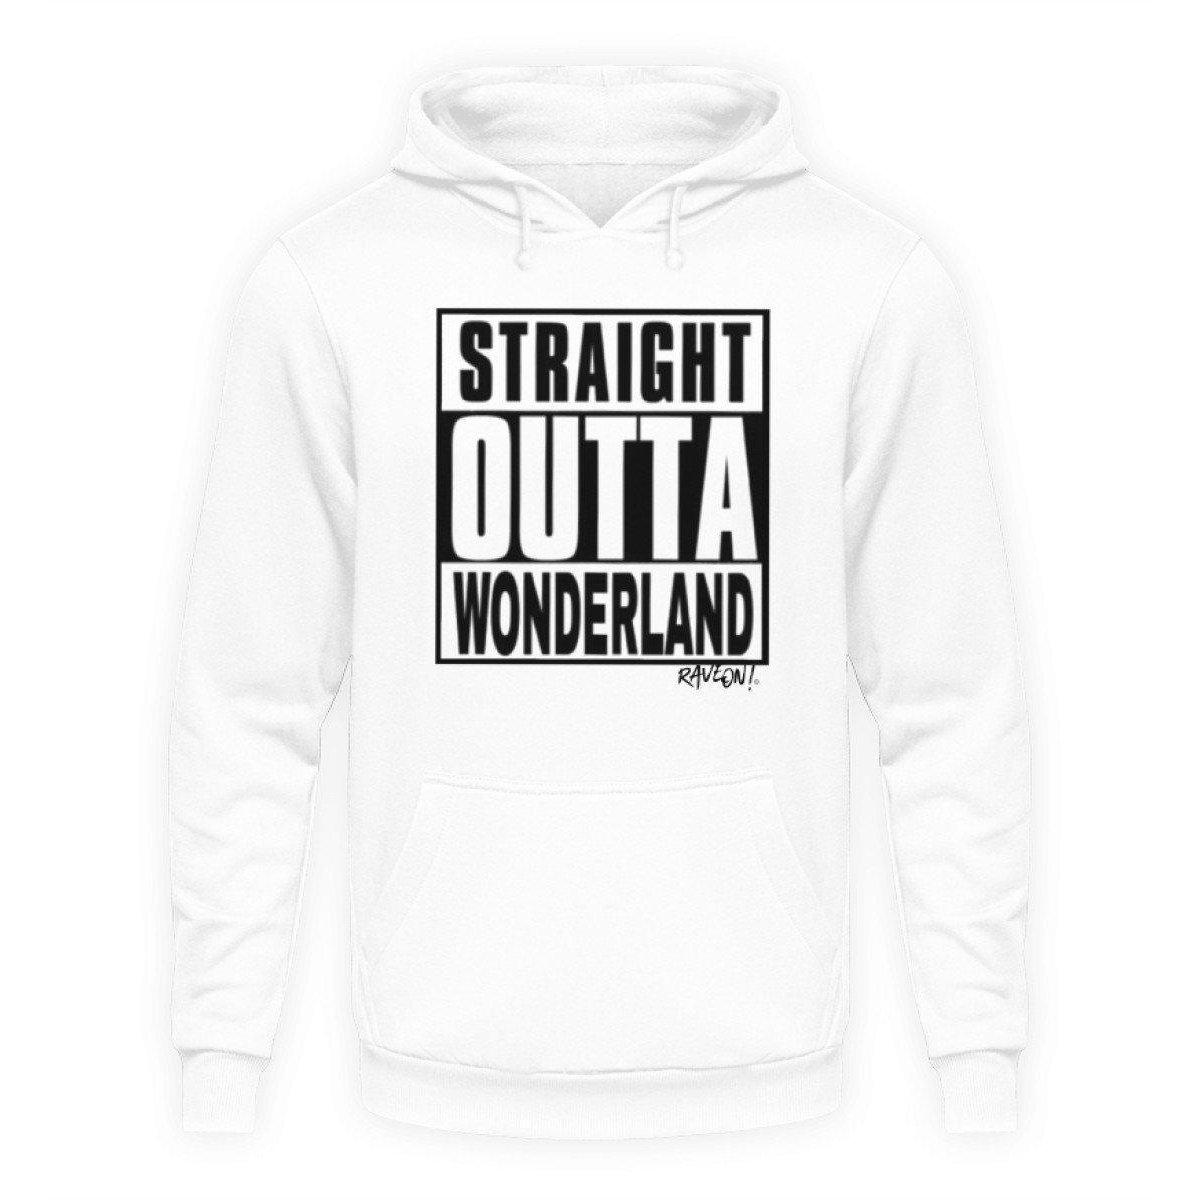 STRAIGHT OUTTA WONDERLAND by Rave On!® - Unisex Kapuzenpullover Hoodie-Unisex Hoodie-Arctic White-L-Rave-On! I www.rave-on.shop I Deine Rave & Techno Szene Shop I Alice, apparel, compton, i heart raves, meme, On!®, outta, rave, rave apparel, rave clothes, rave clothing, rave fashion, rave gear, rave on, Rave On!®, rave shop, rave t shirt, rave wear, raver, Shirt, straight, STRAIGHT OUTTA, techno, techno apparel, wonderland, ® - Sexy Festival Streetwear , Clubwear & Raver Style